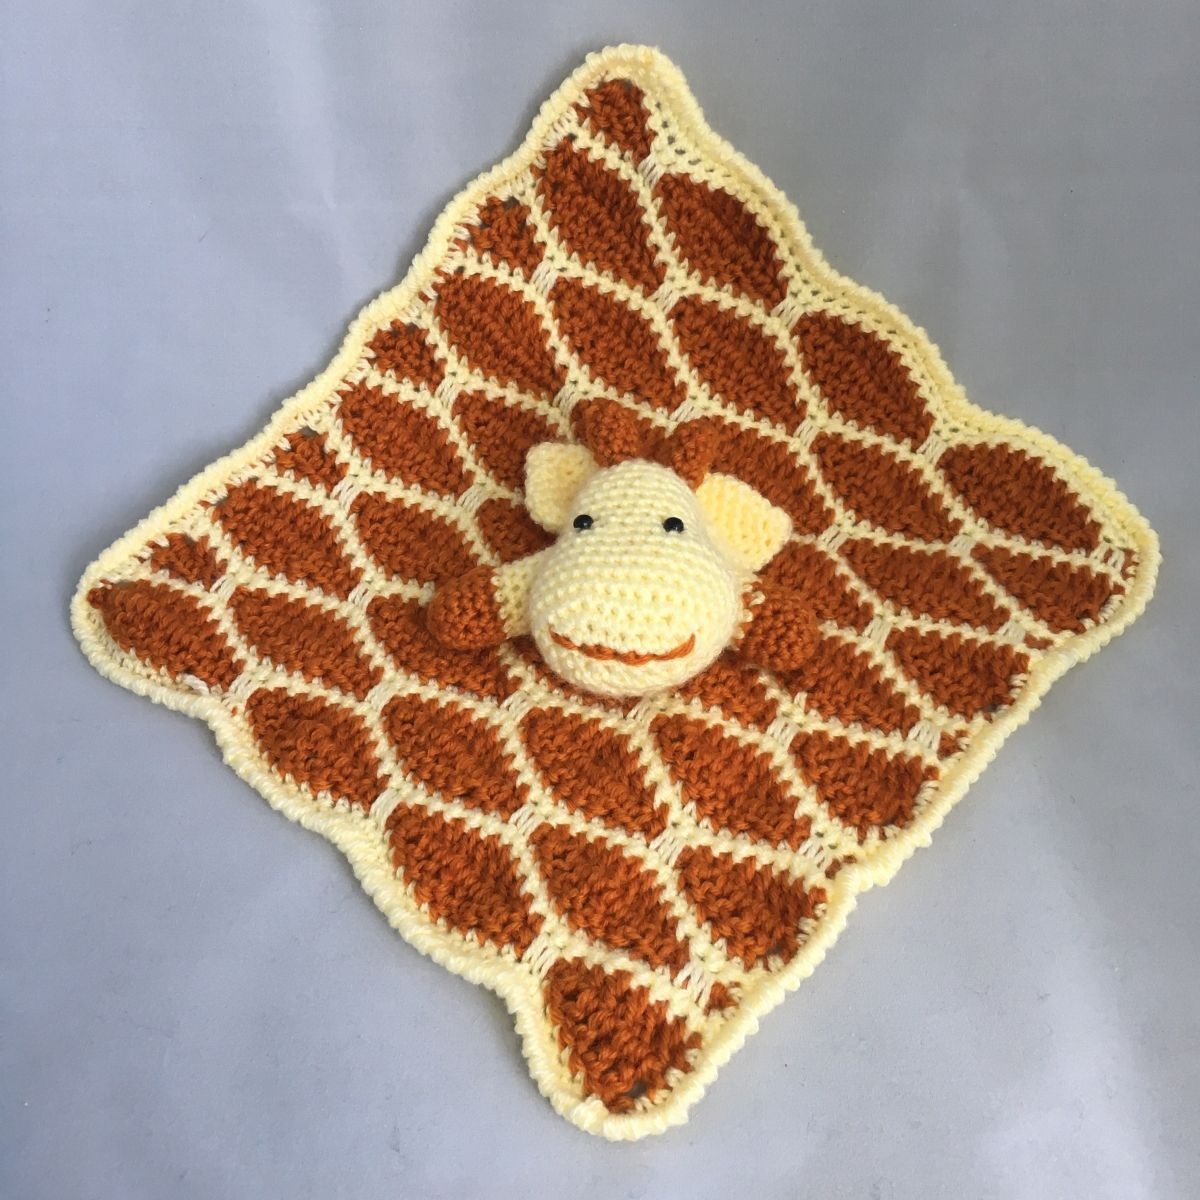 Giraffe Security Blanket (free pattern) #securityblankets